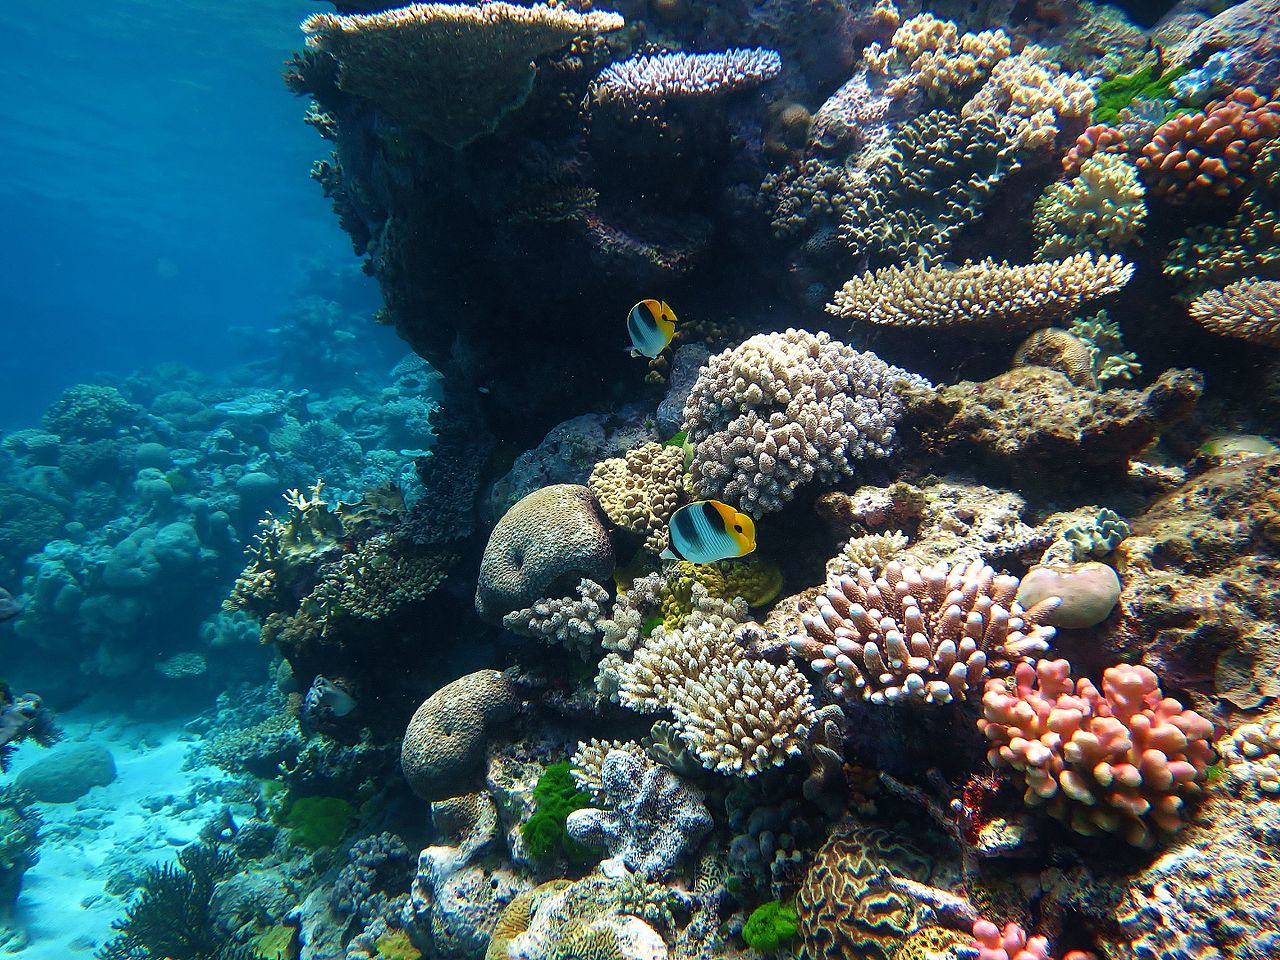 What Is Going on with the World's Corals, What Is Being Done and What Can You Do